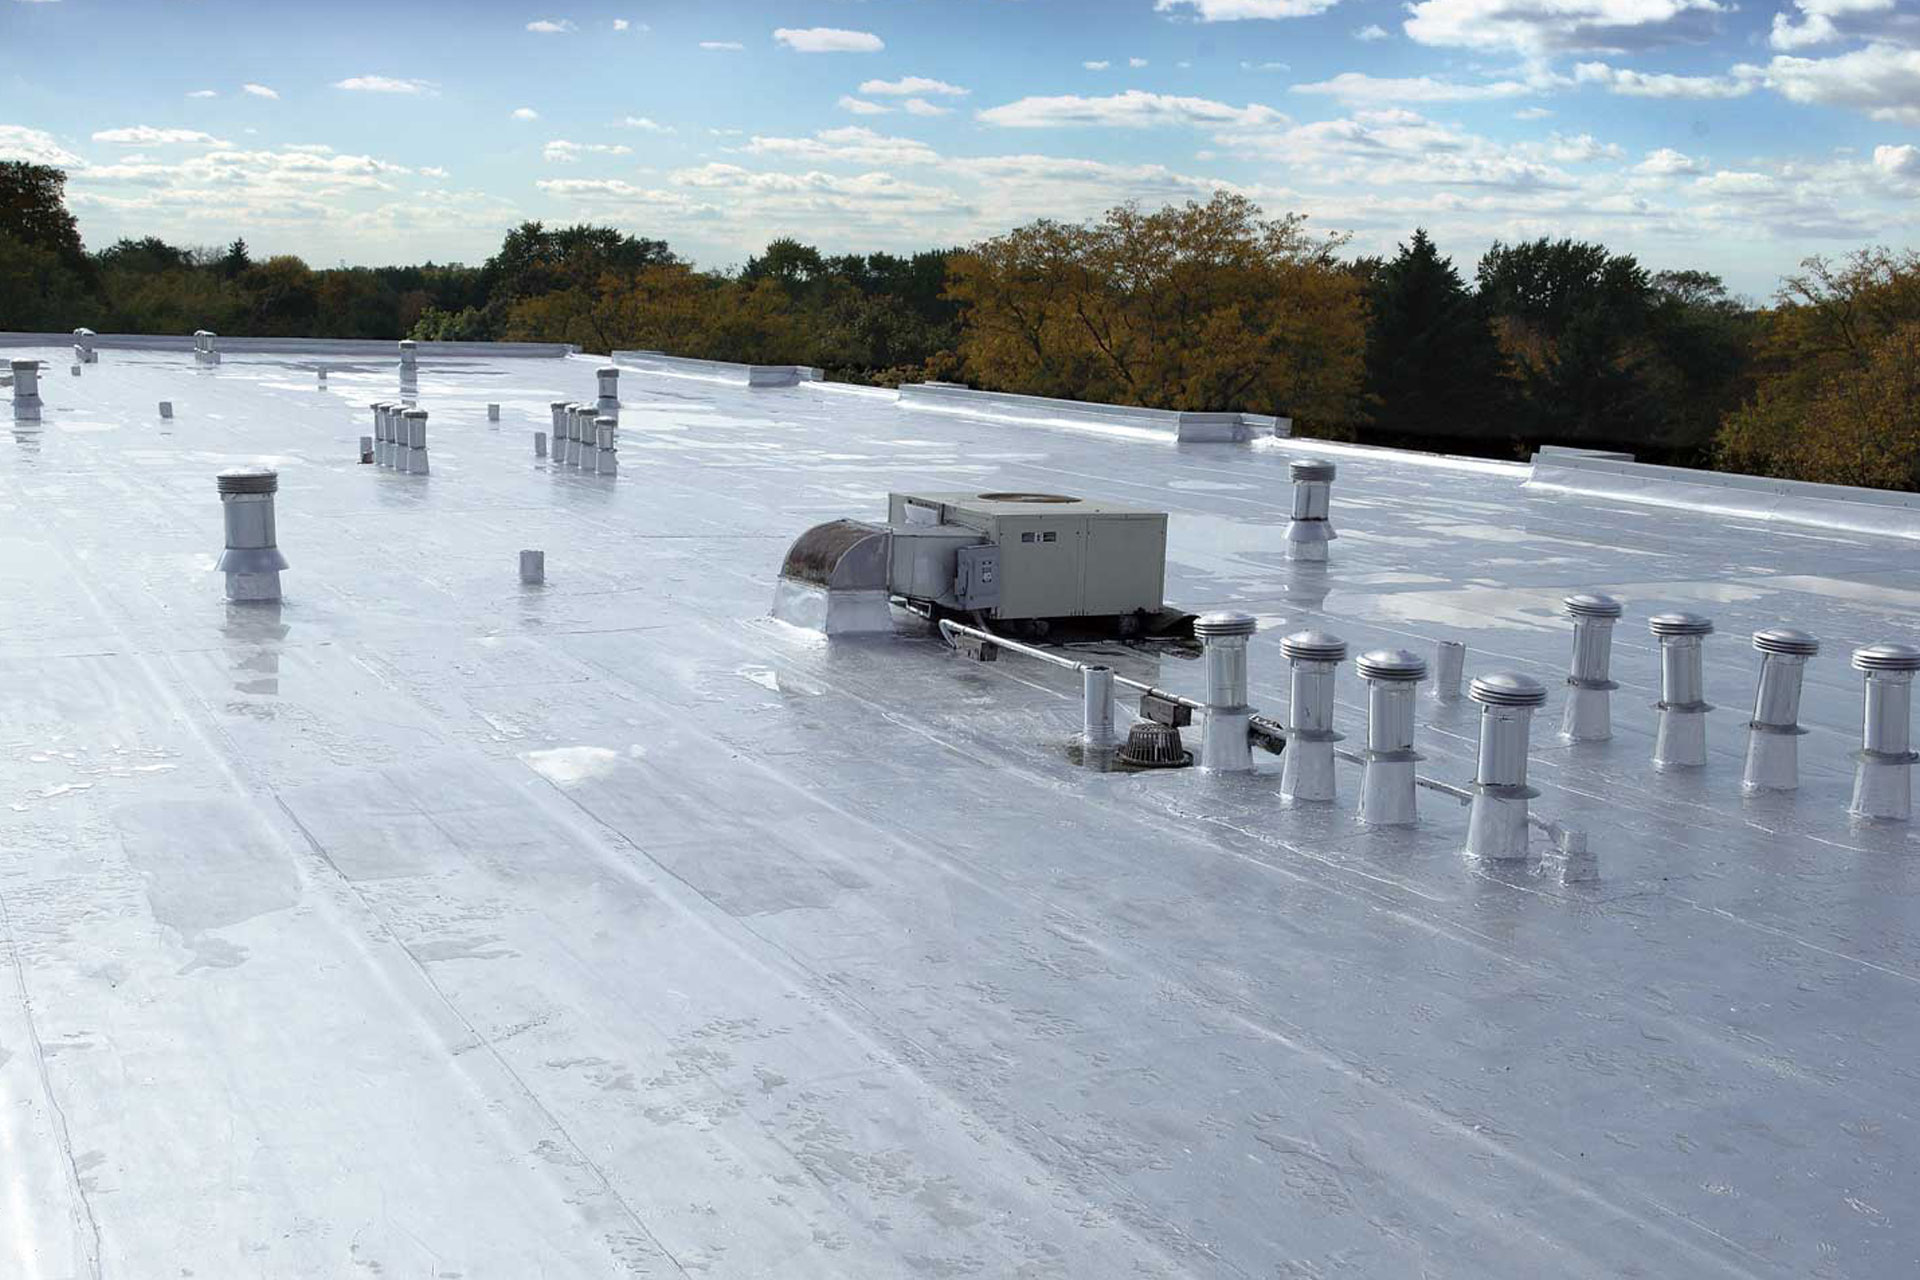 https://nyccommercialroofing.com/wp-content/uploads/2020/05/a1.jpg